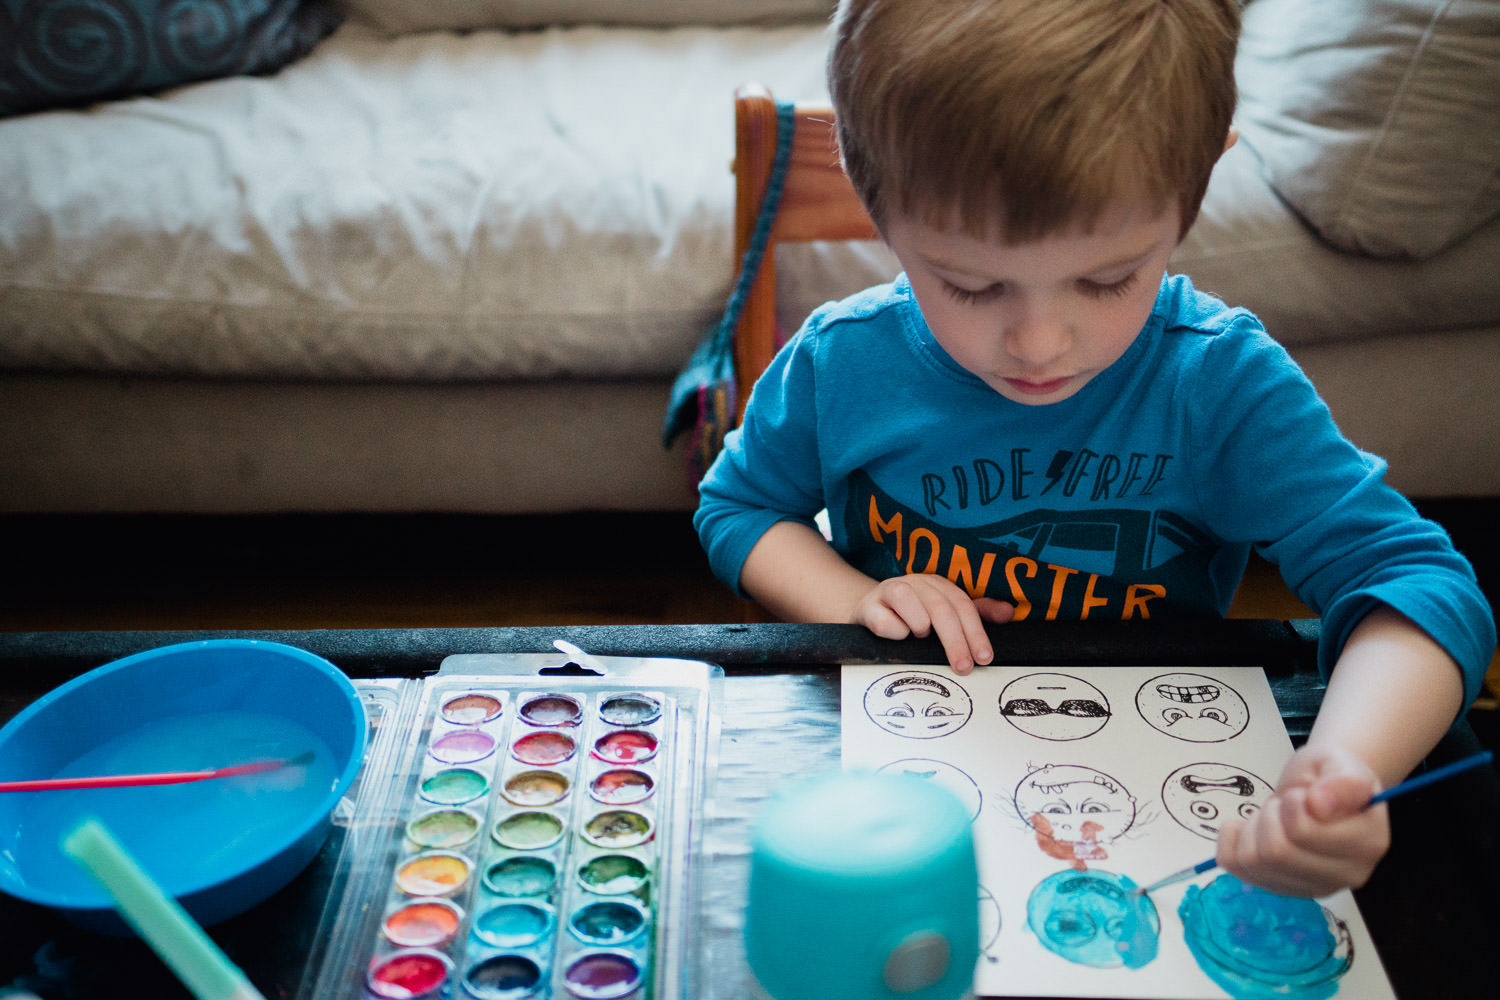 A little boy paints with watercolors.